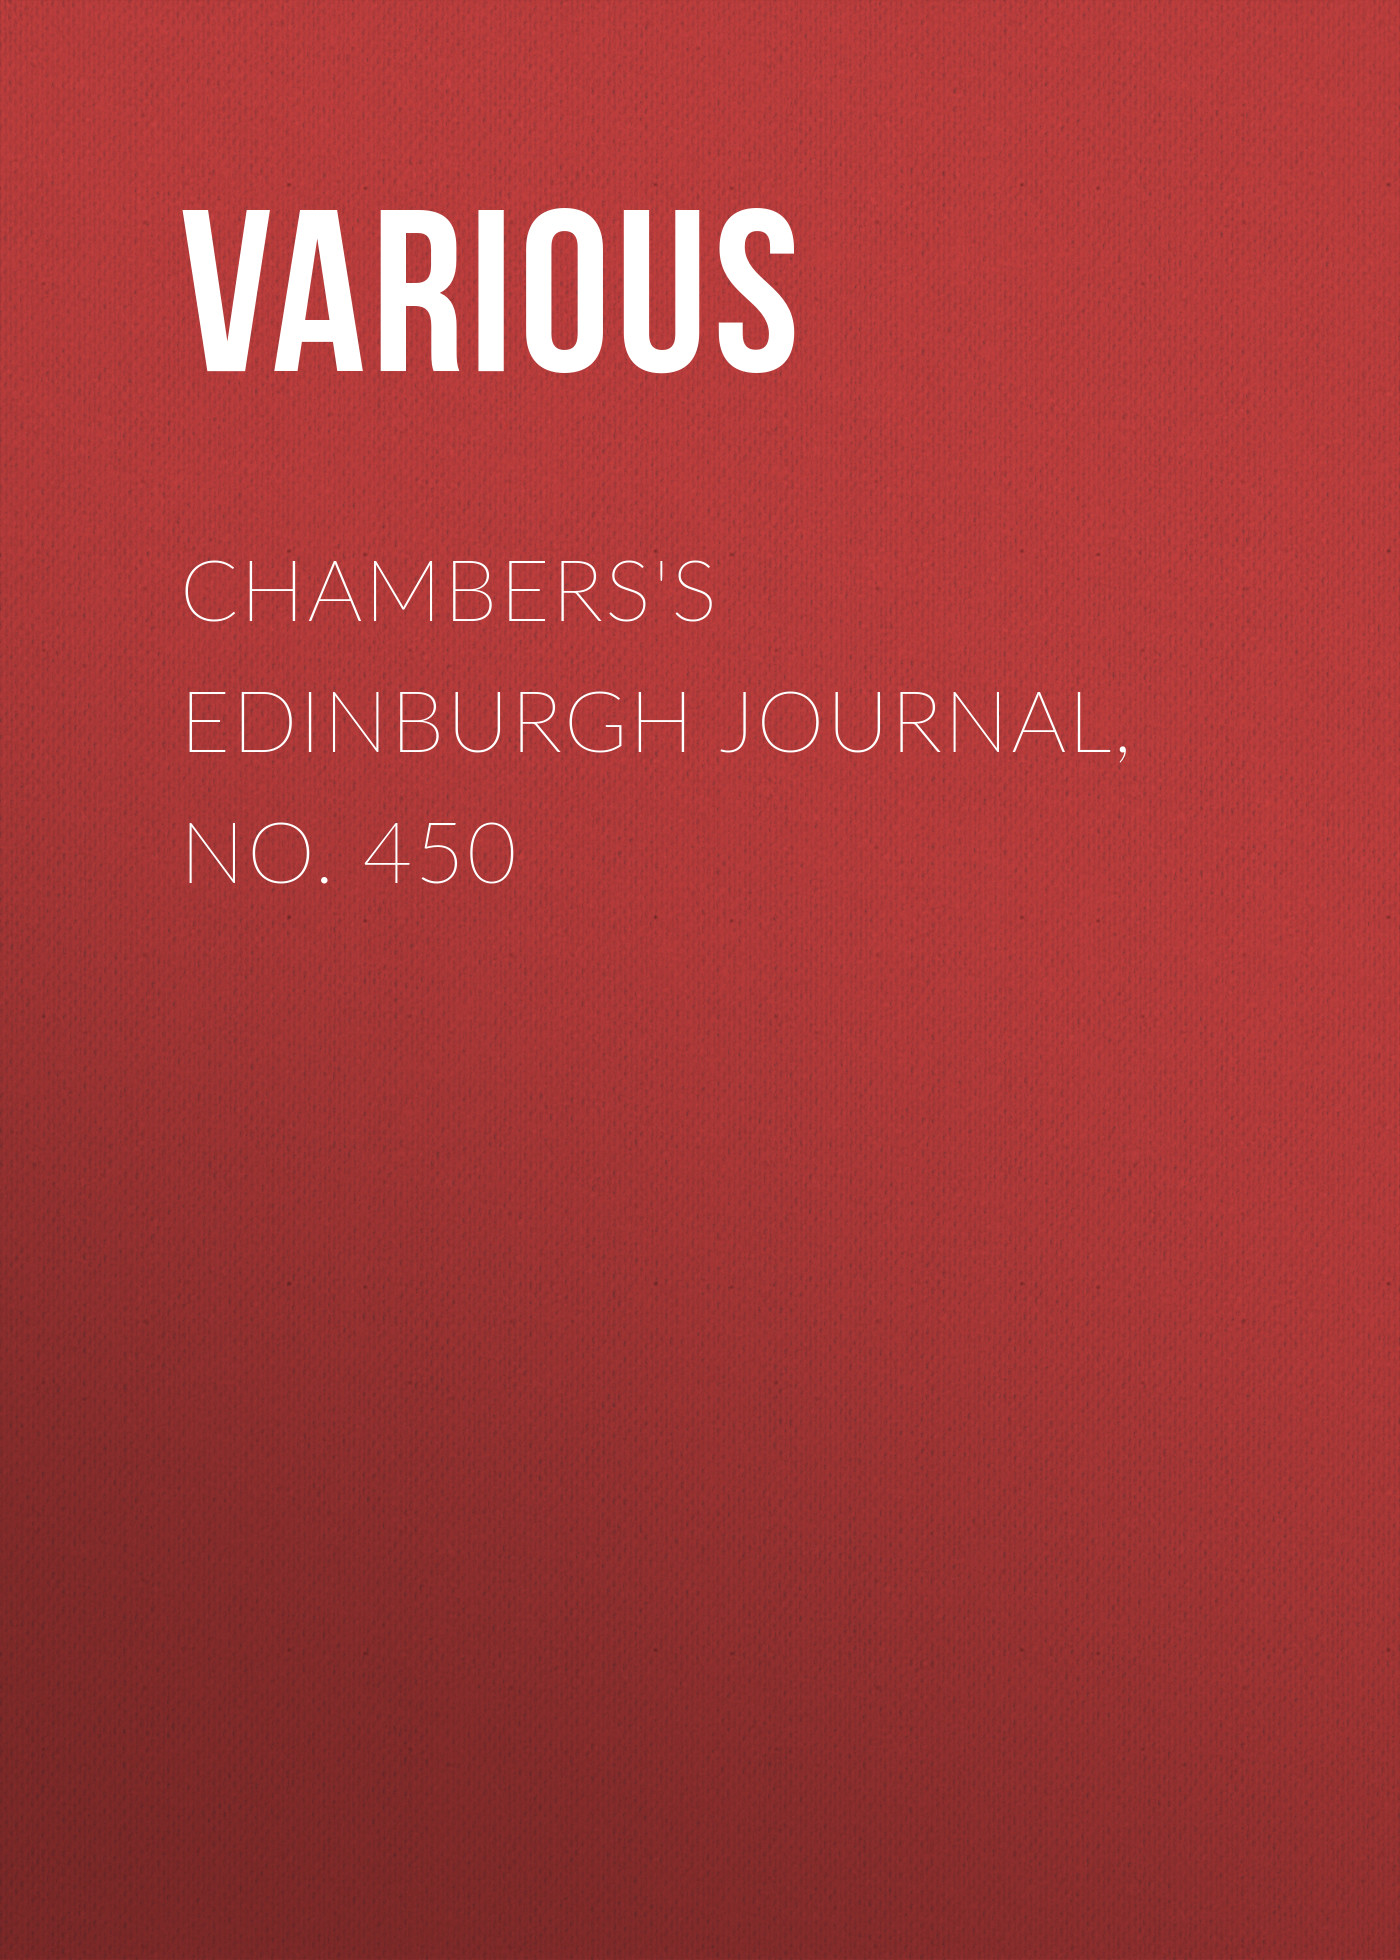 Various Chambers's Edinburgh Journal, No. 450 various chambers s edinburgh journal no 428